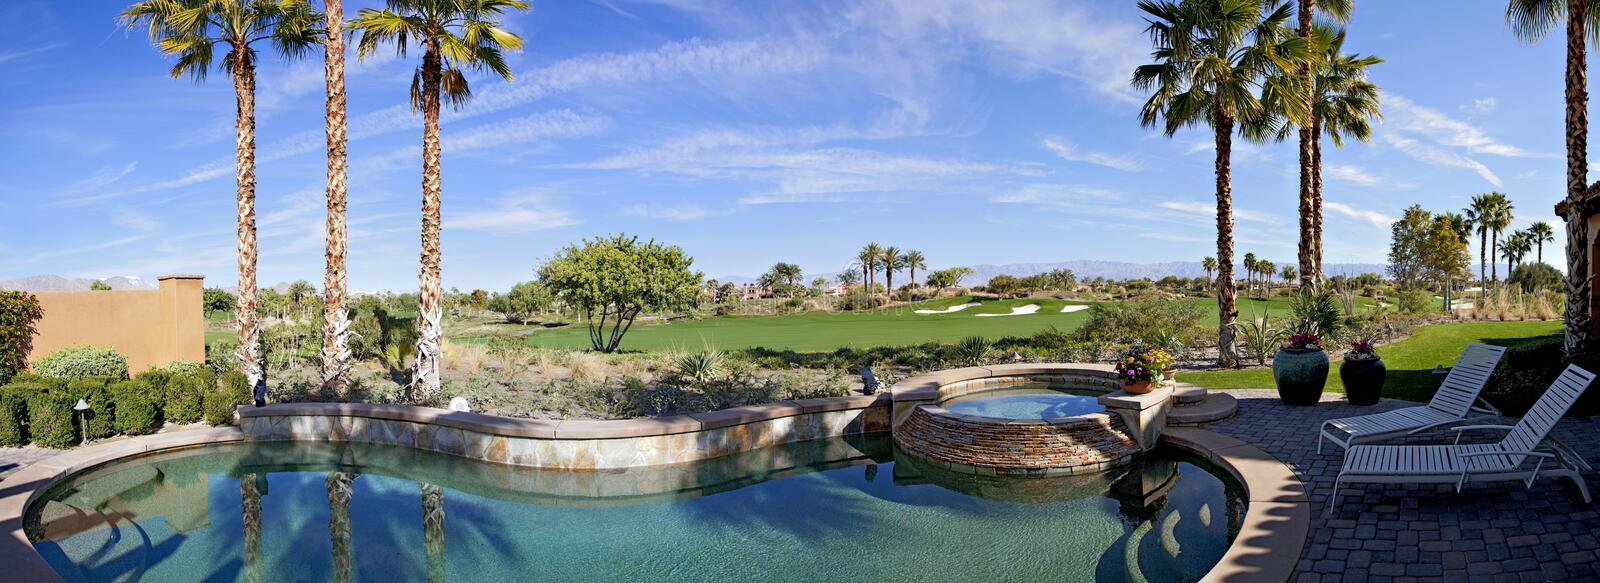 Download Panoramic View Of Swimming Pool, Hot Tub And Golf Course Stock Photo - Image: 30856416